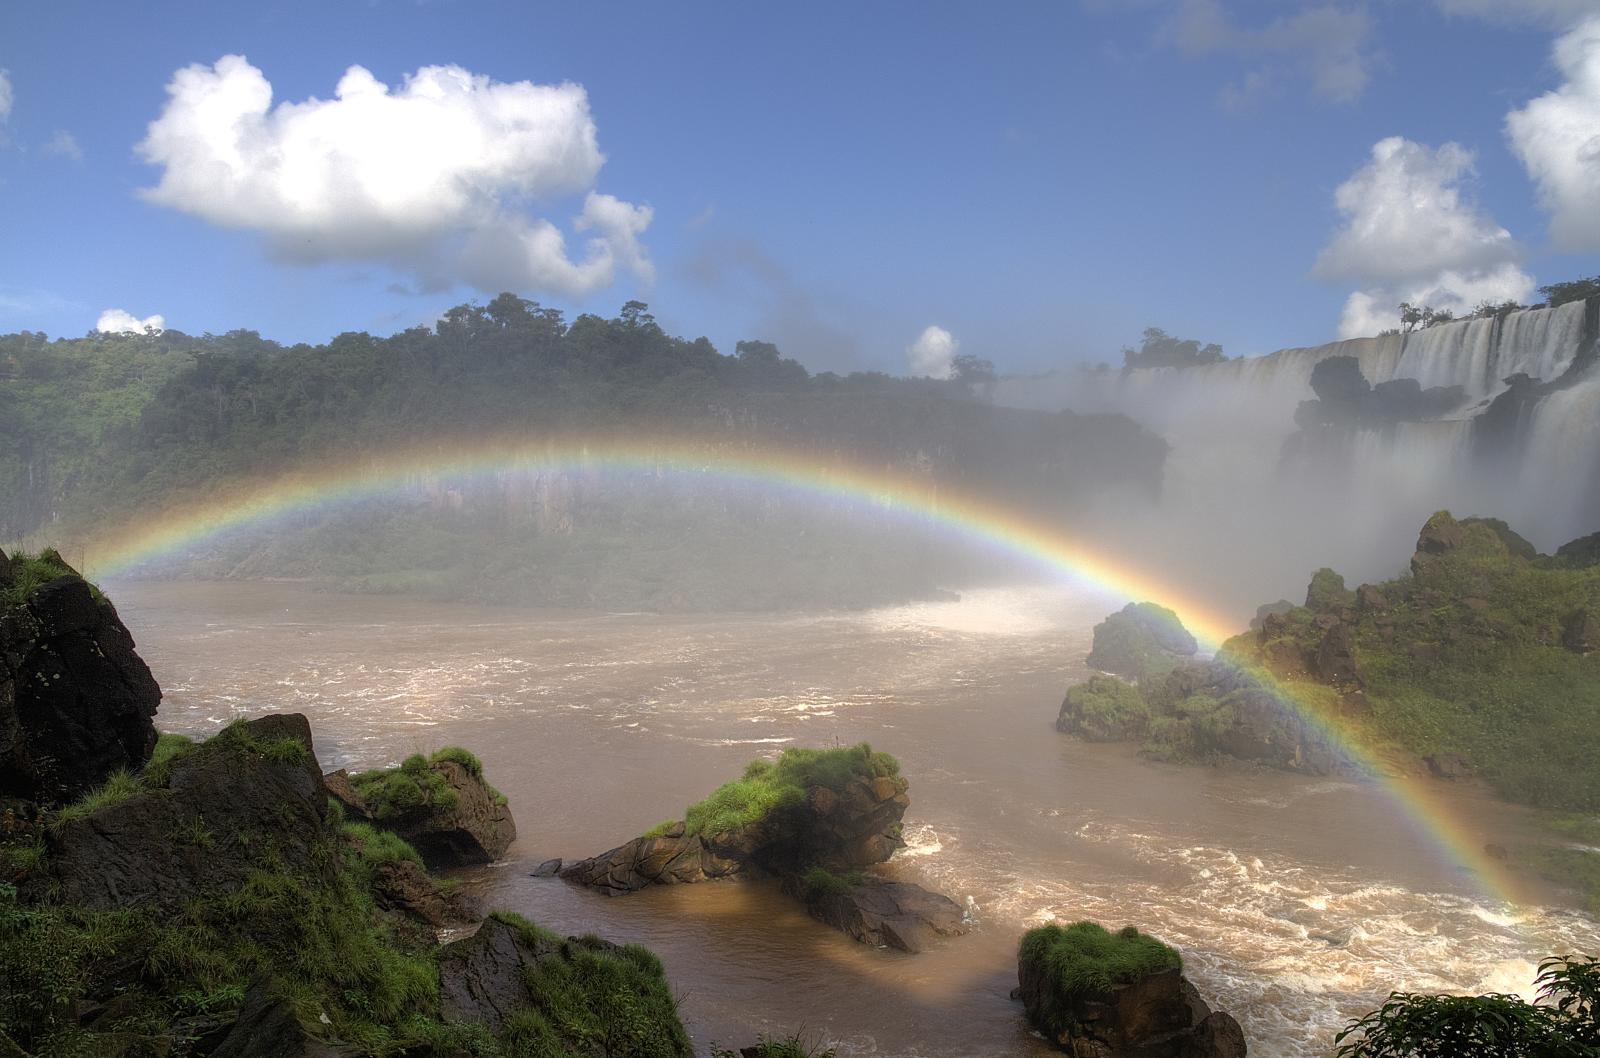 cataratas y arcoiris